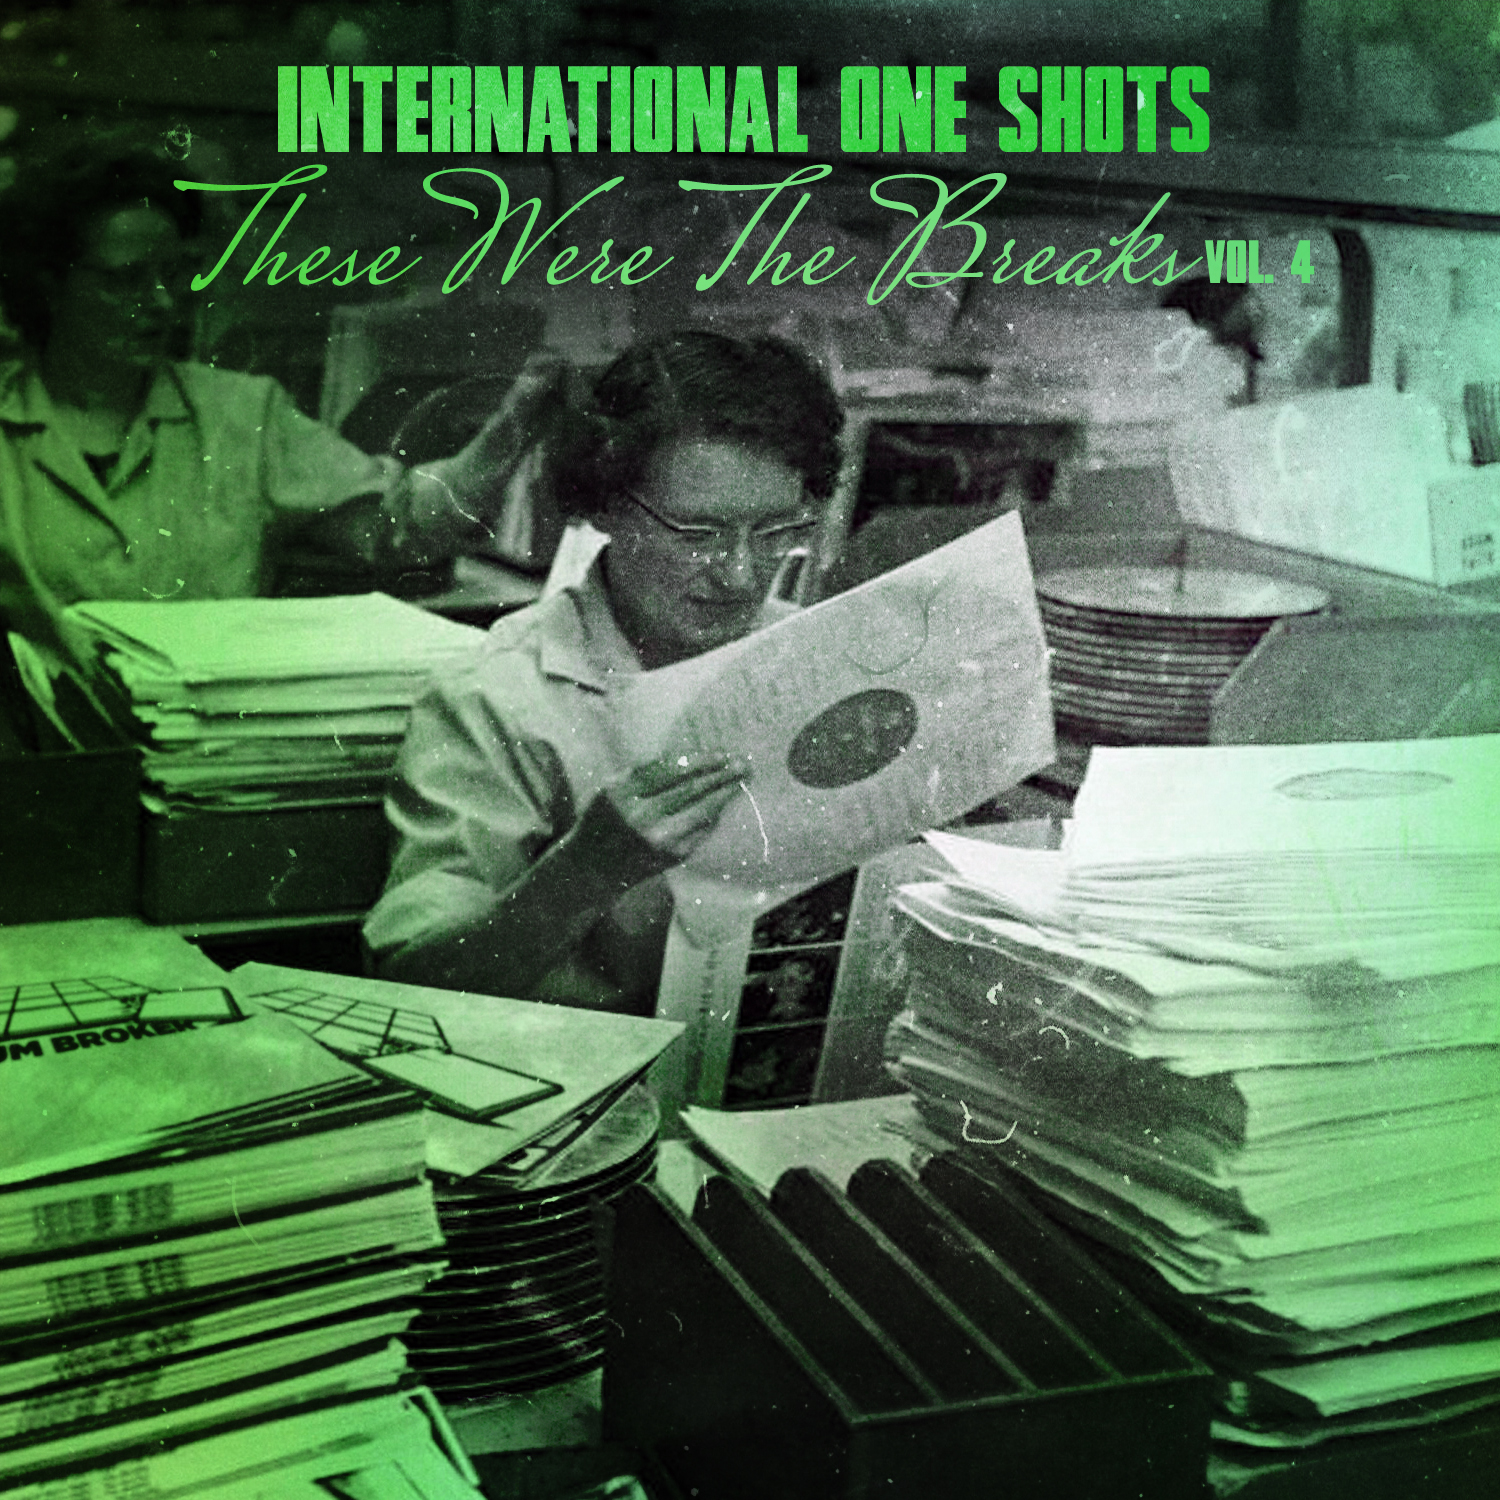 drum-samples-international-one-shots-vol-4-these-were-the-breaks